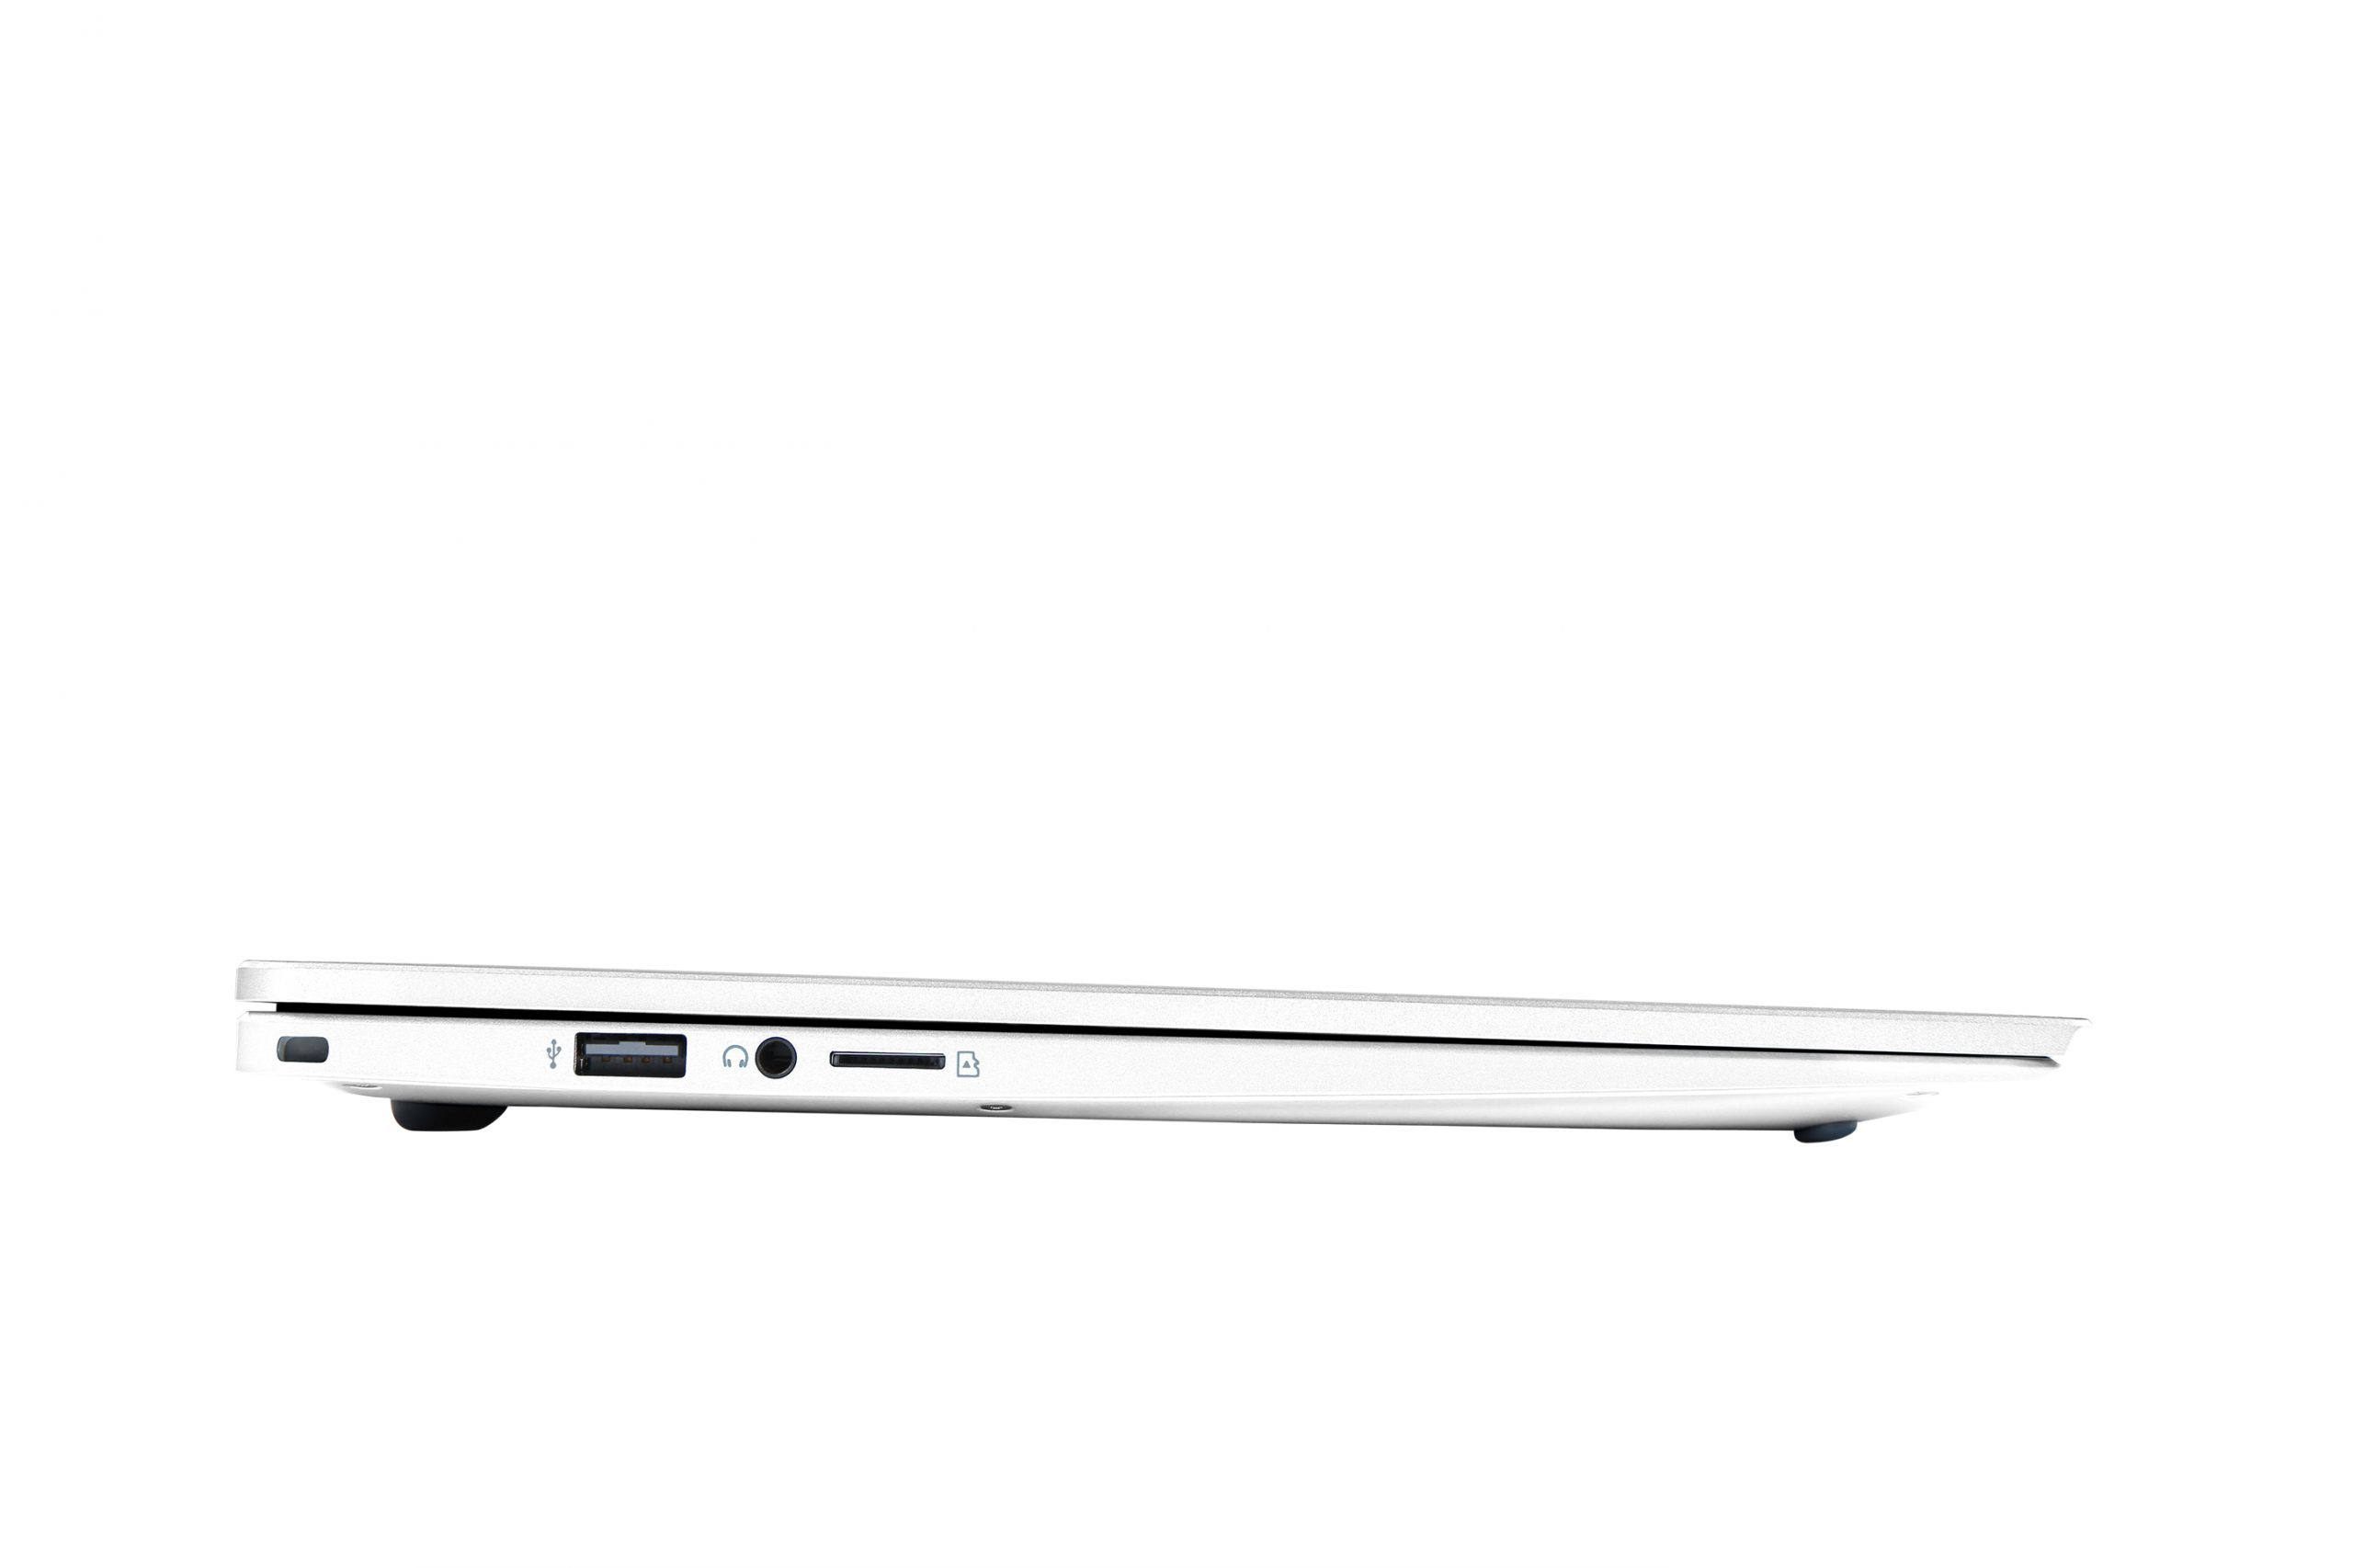 https://t2qwifi.com/wp-content/uploads/2020/07/avita_laptop_2020_angle3_0025_high_pearl-white-scaled.jpg